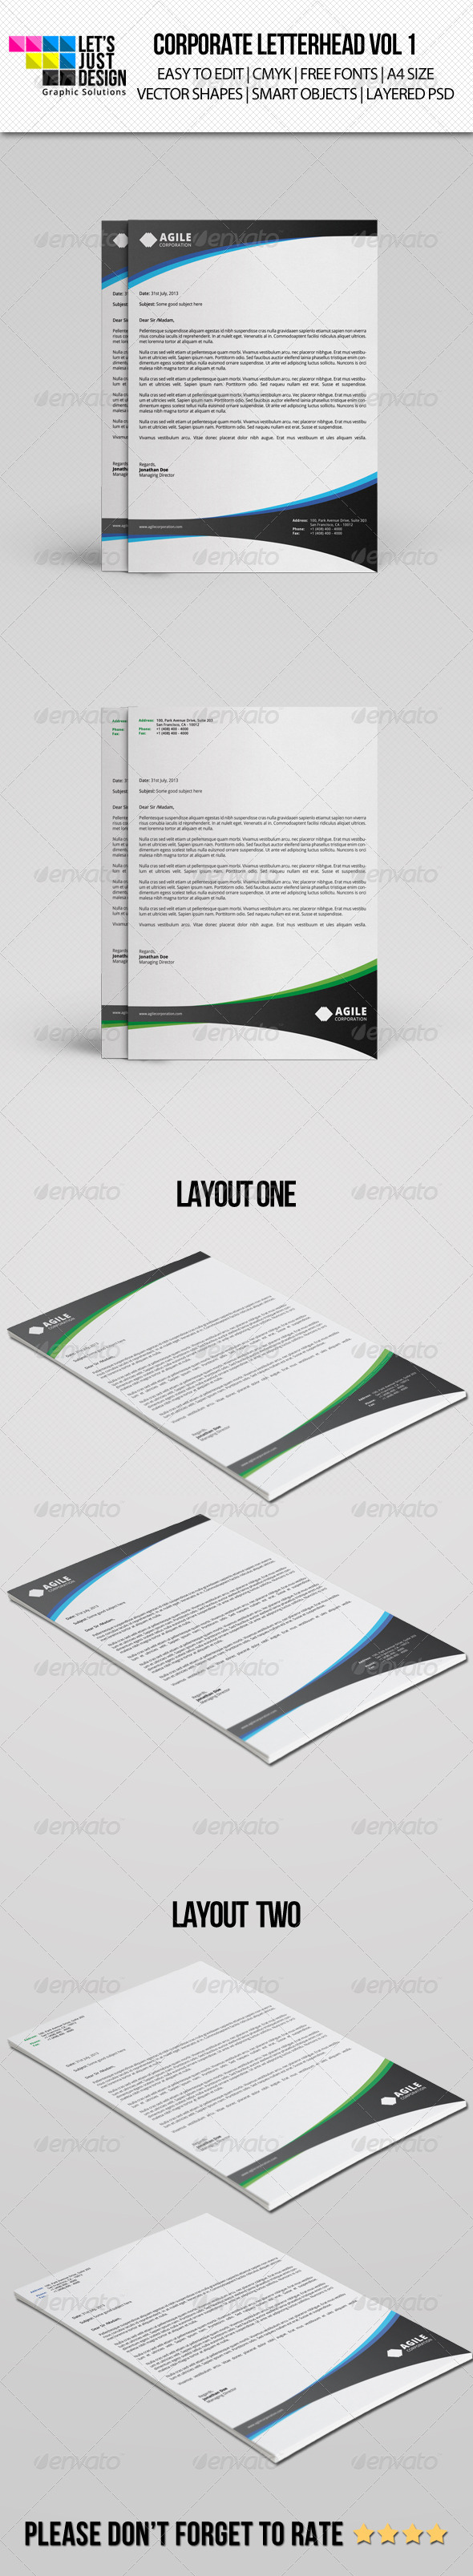 GraphicRiver Corporate Letterhead vol 1 7494280